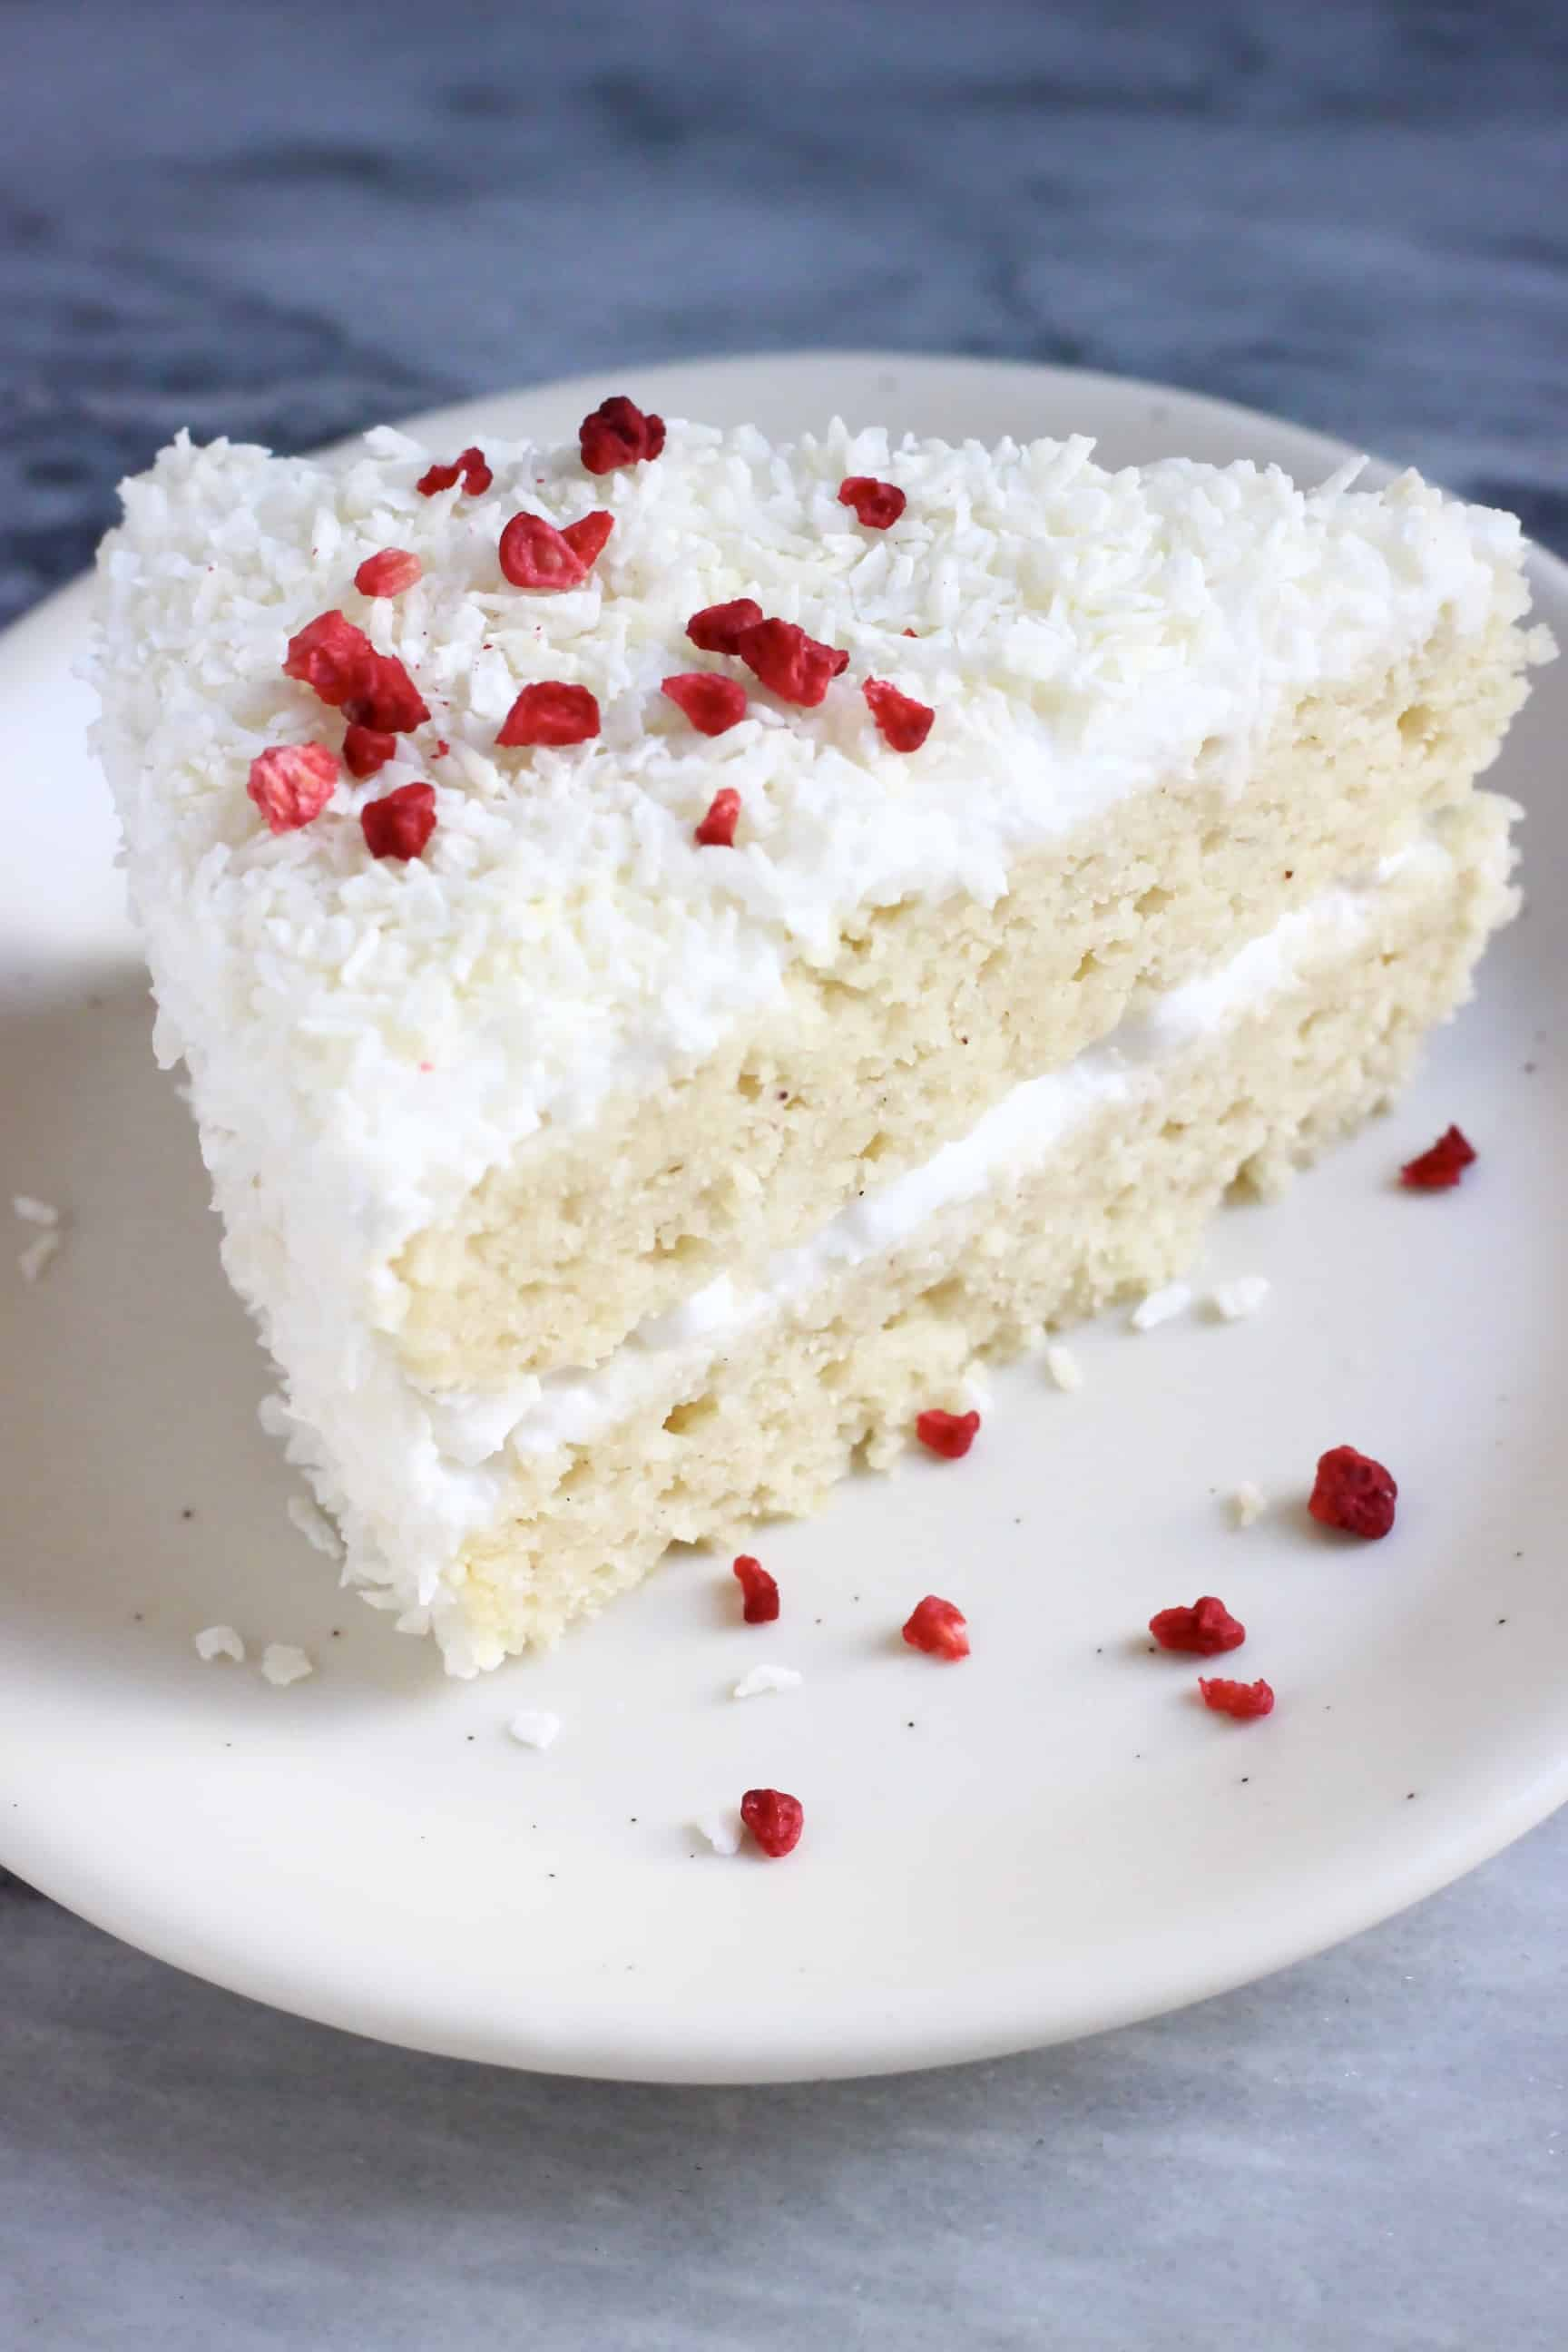 A slice of gluten-free vegan coconut cake topped with desiccated coconut and freeze-dried raspberries